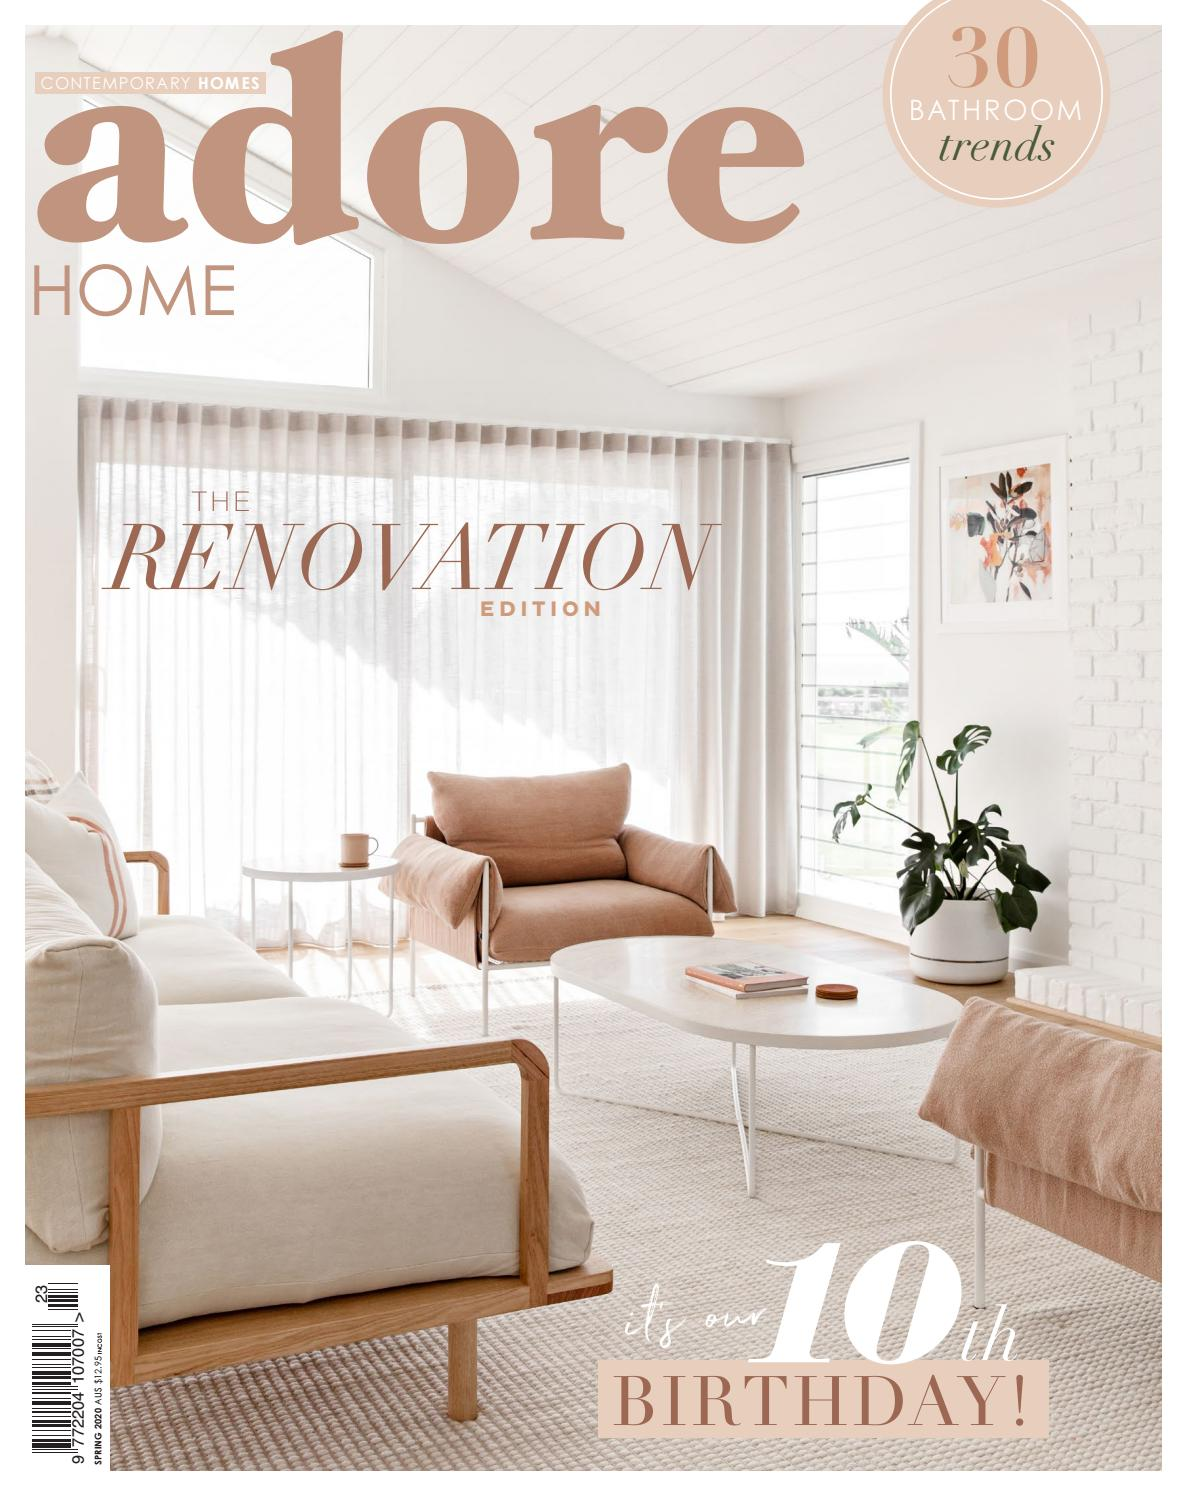 Adore Home Magazine The Renovation Edition Spring 2020 By Adore Home Magazine Issuu